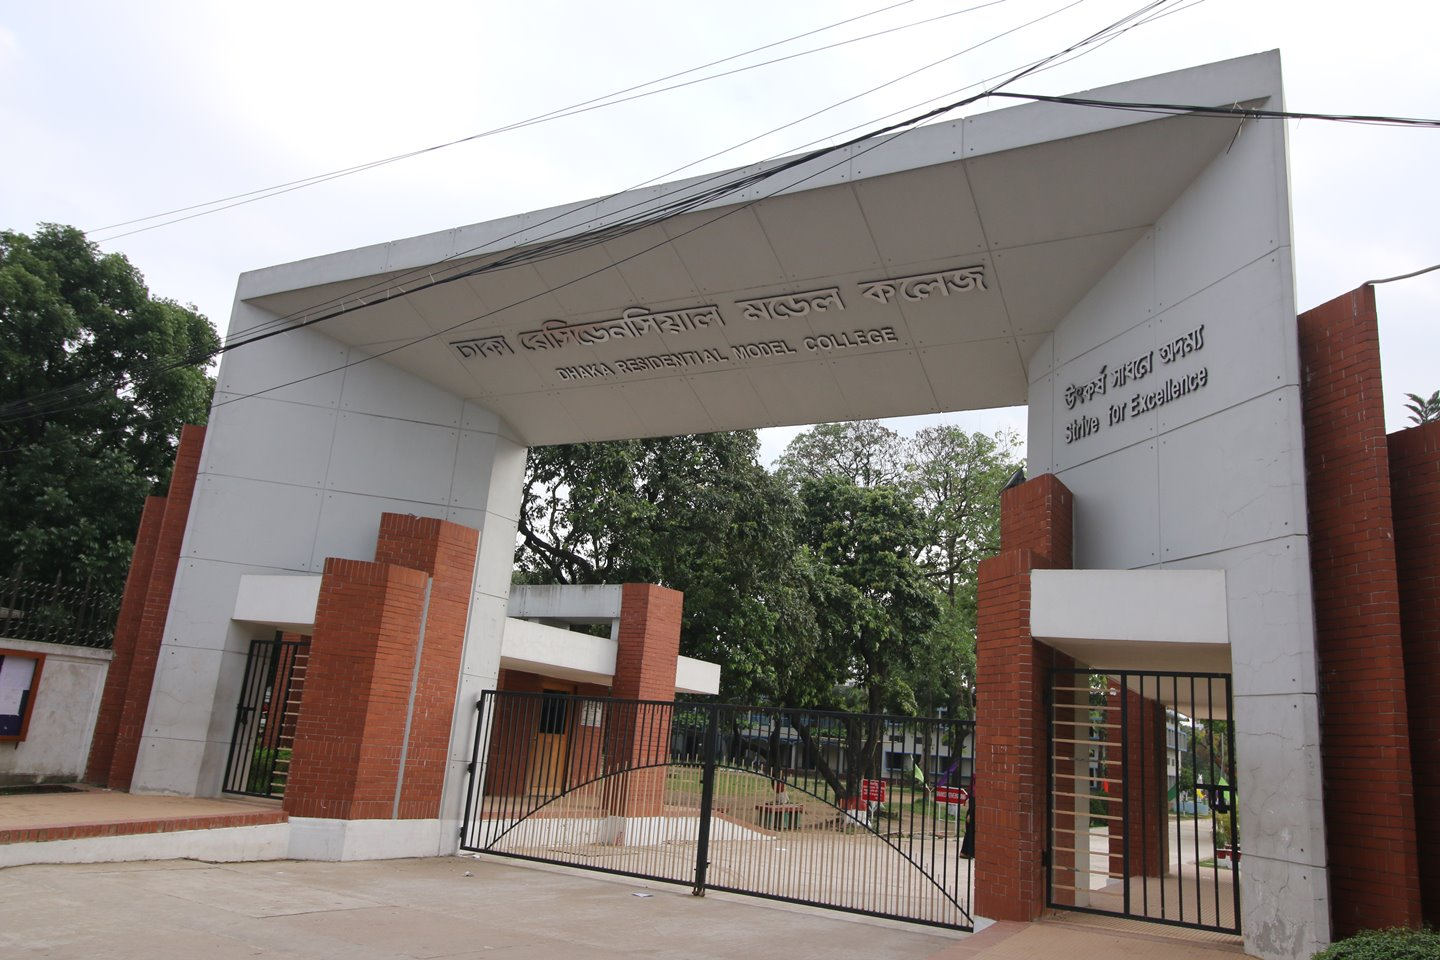 Residential Model College gate